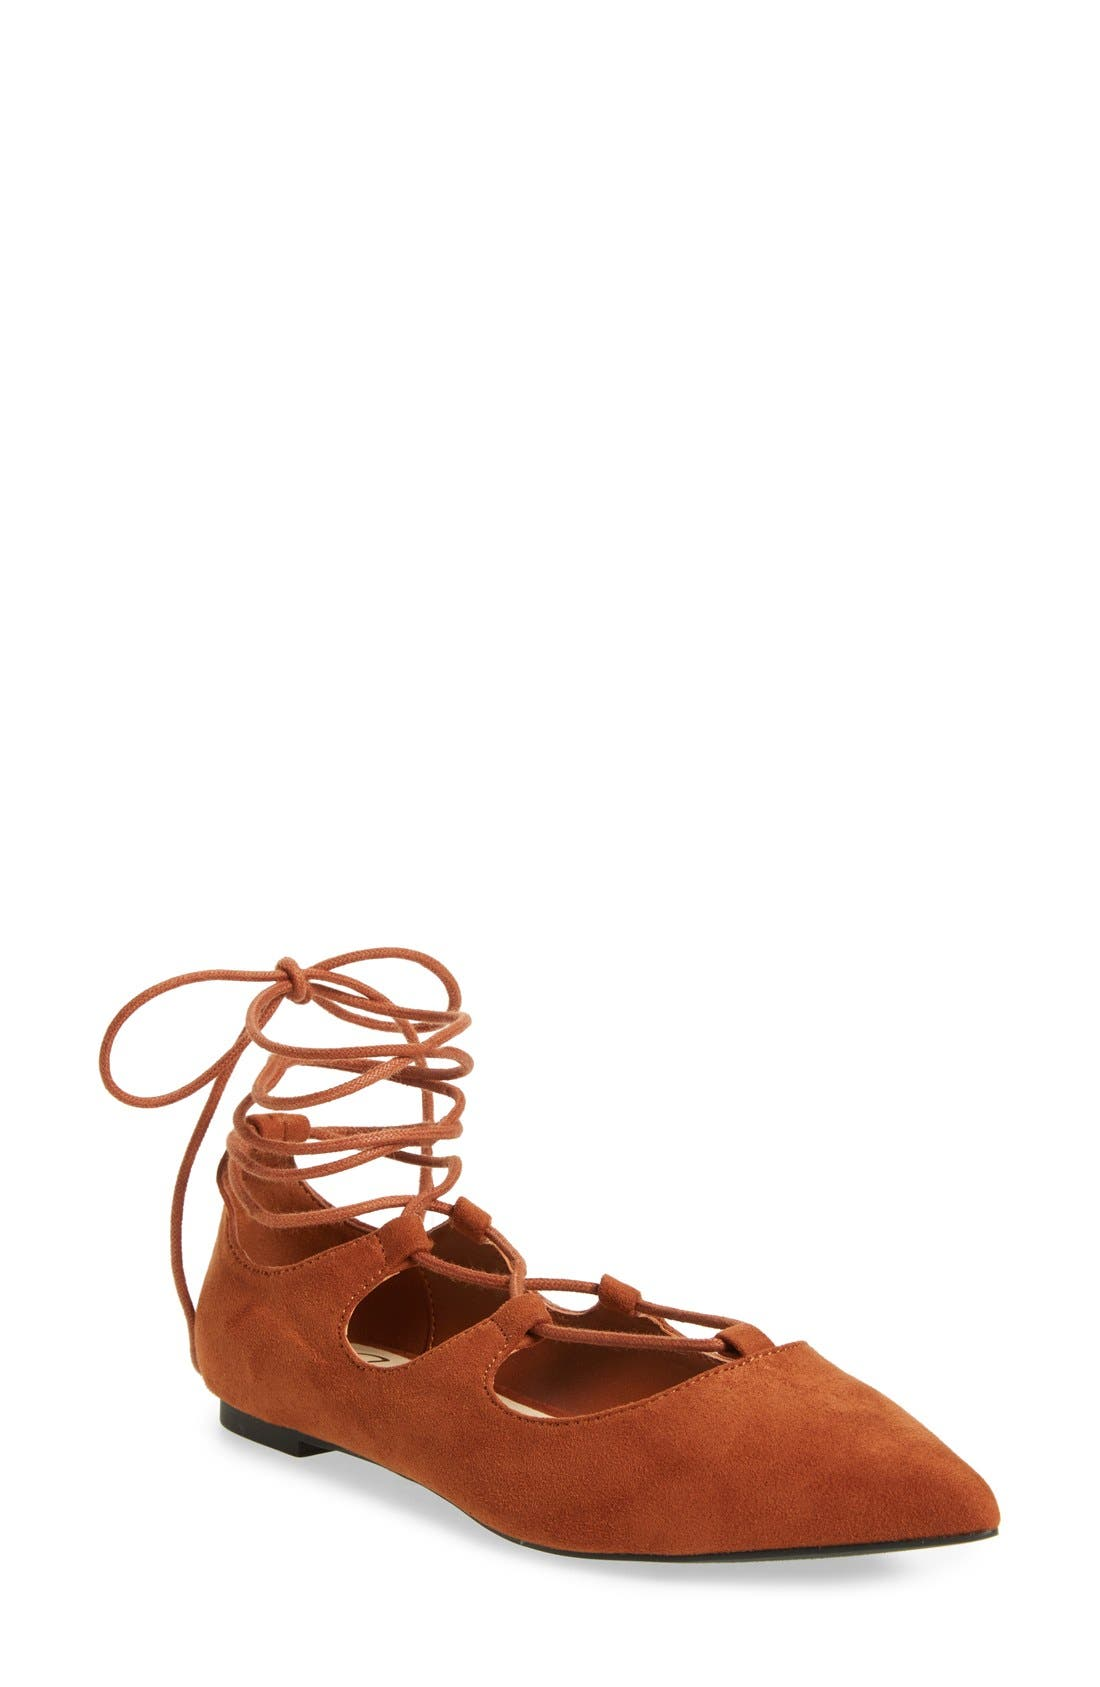 Main Image - Callisto 'Rian' Ghillie Lace Pointy Toe Flat (Women)